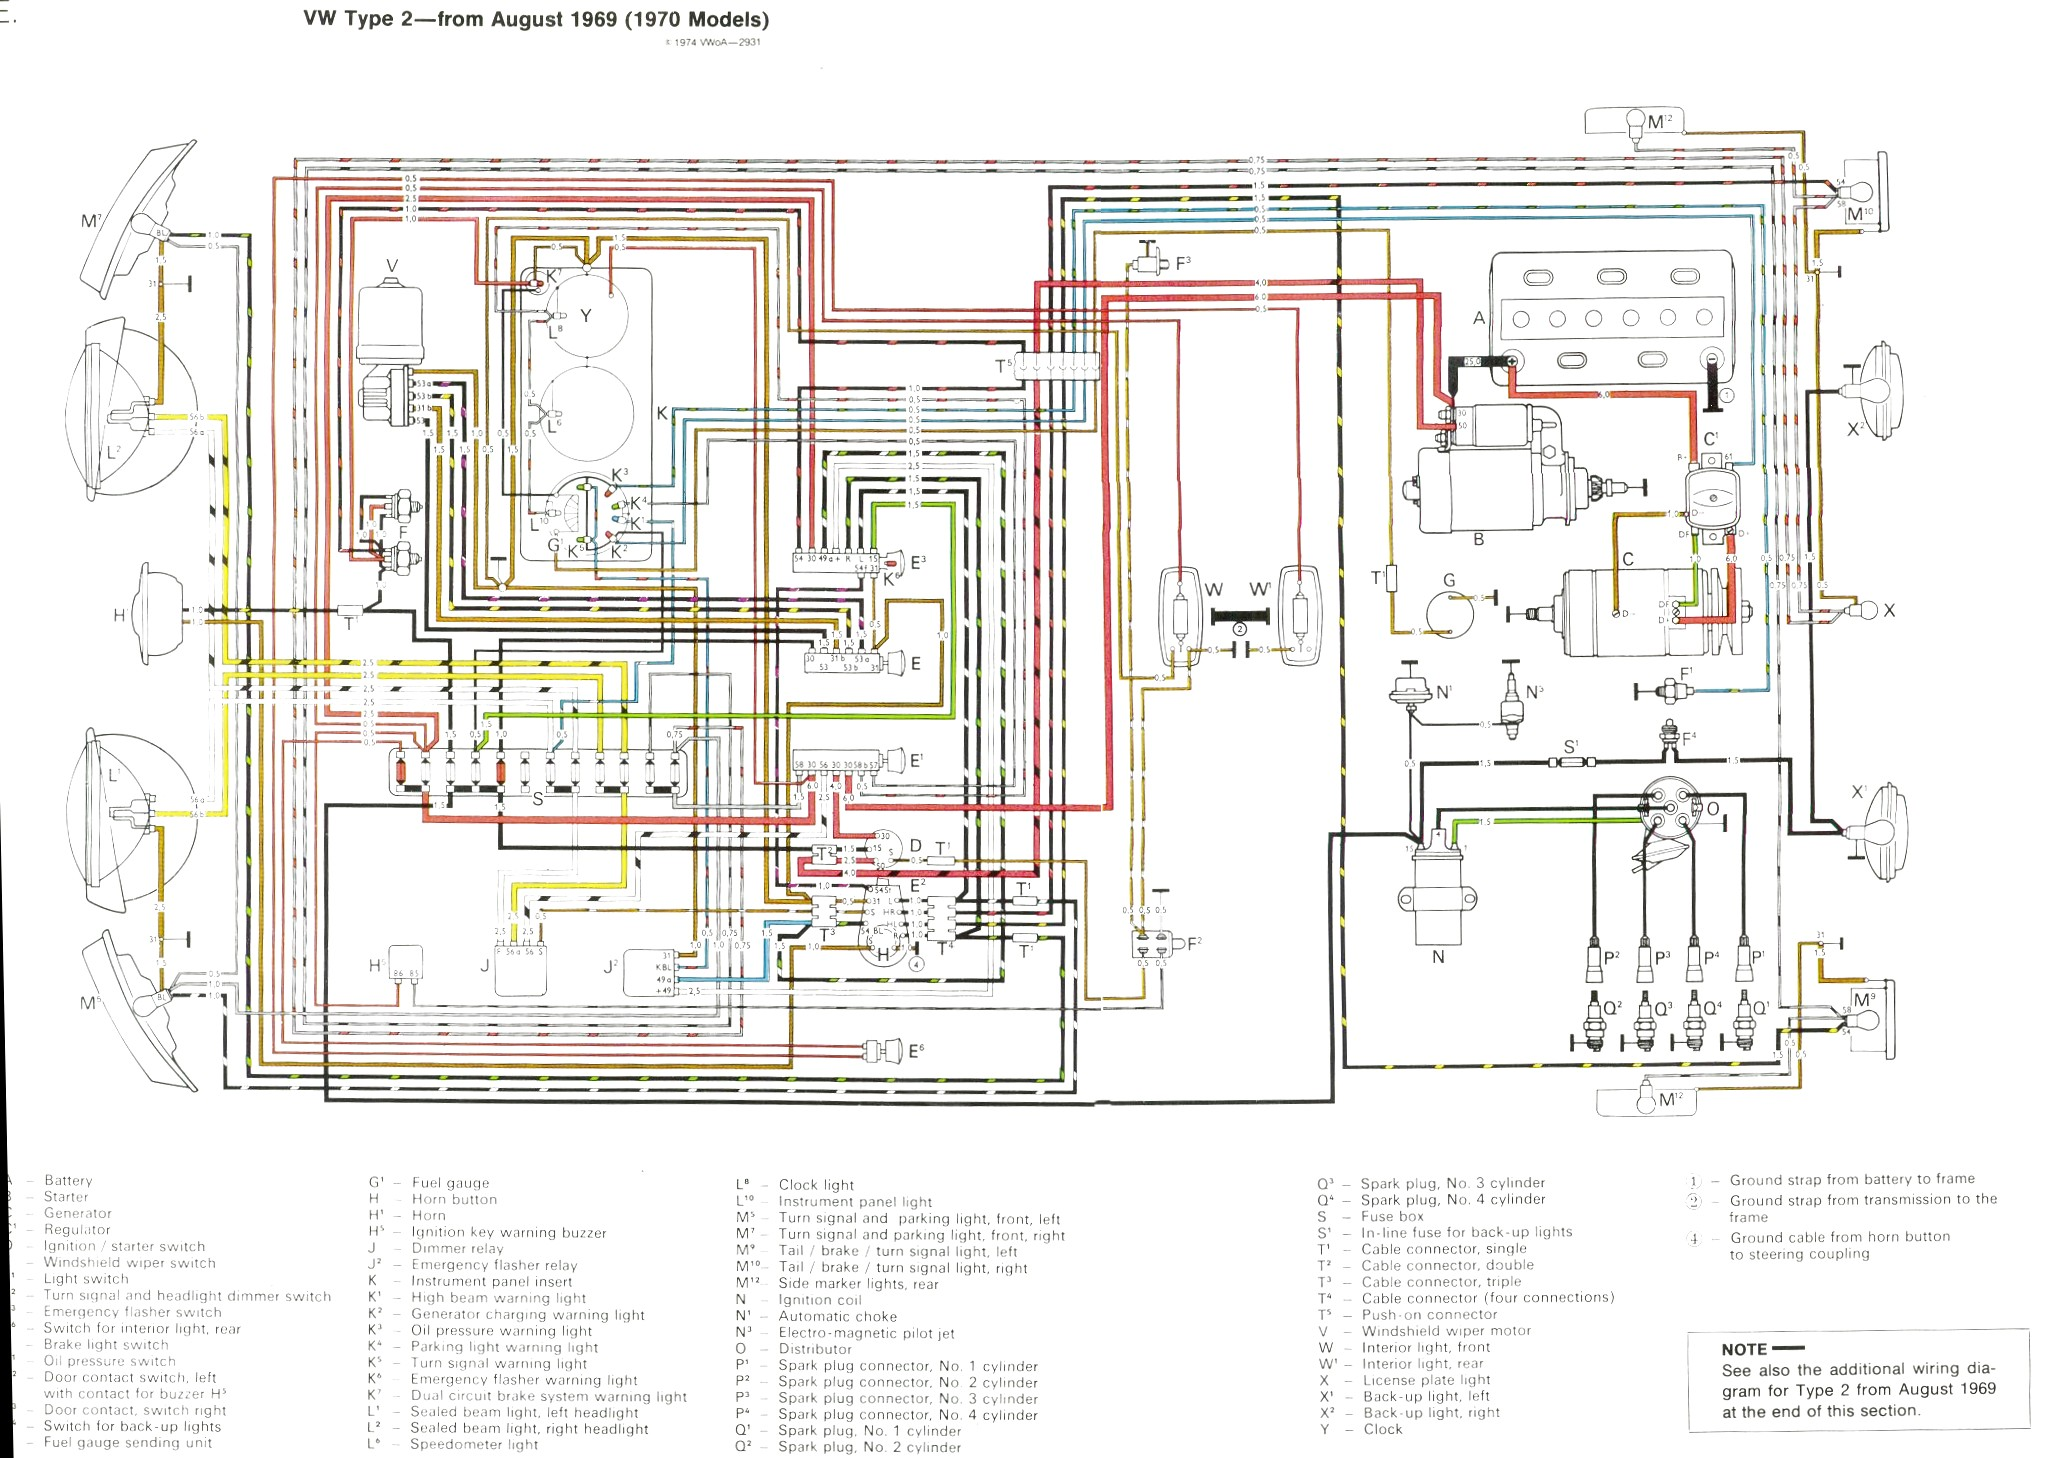 bus 69 70 vintagebus com vw bus (and other) wiring diagrams VW Jetta Wiring Diagram at gsmx.co